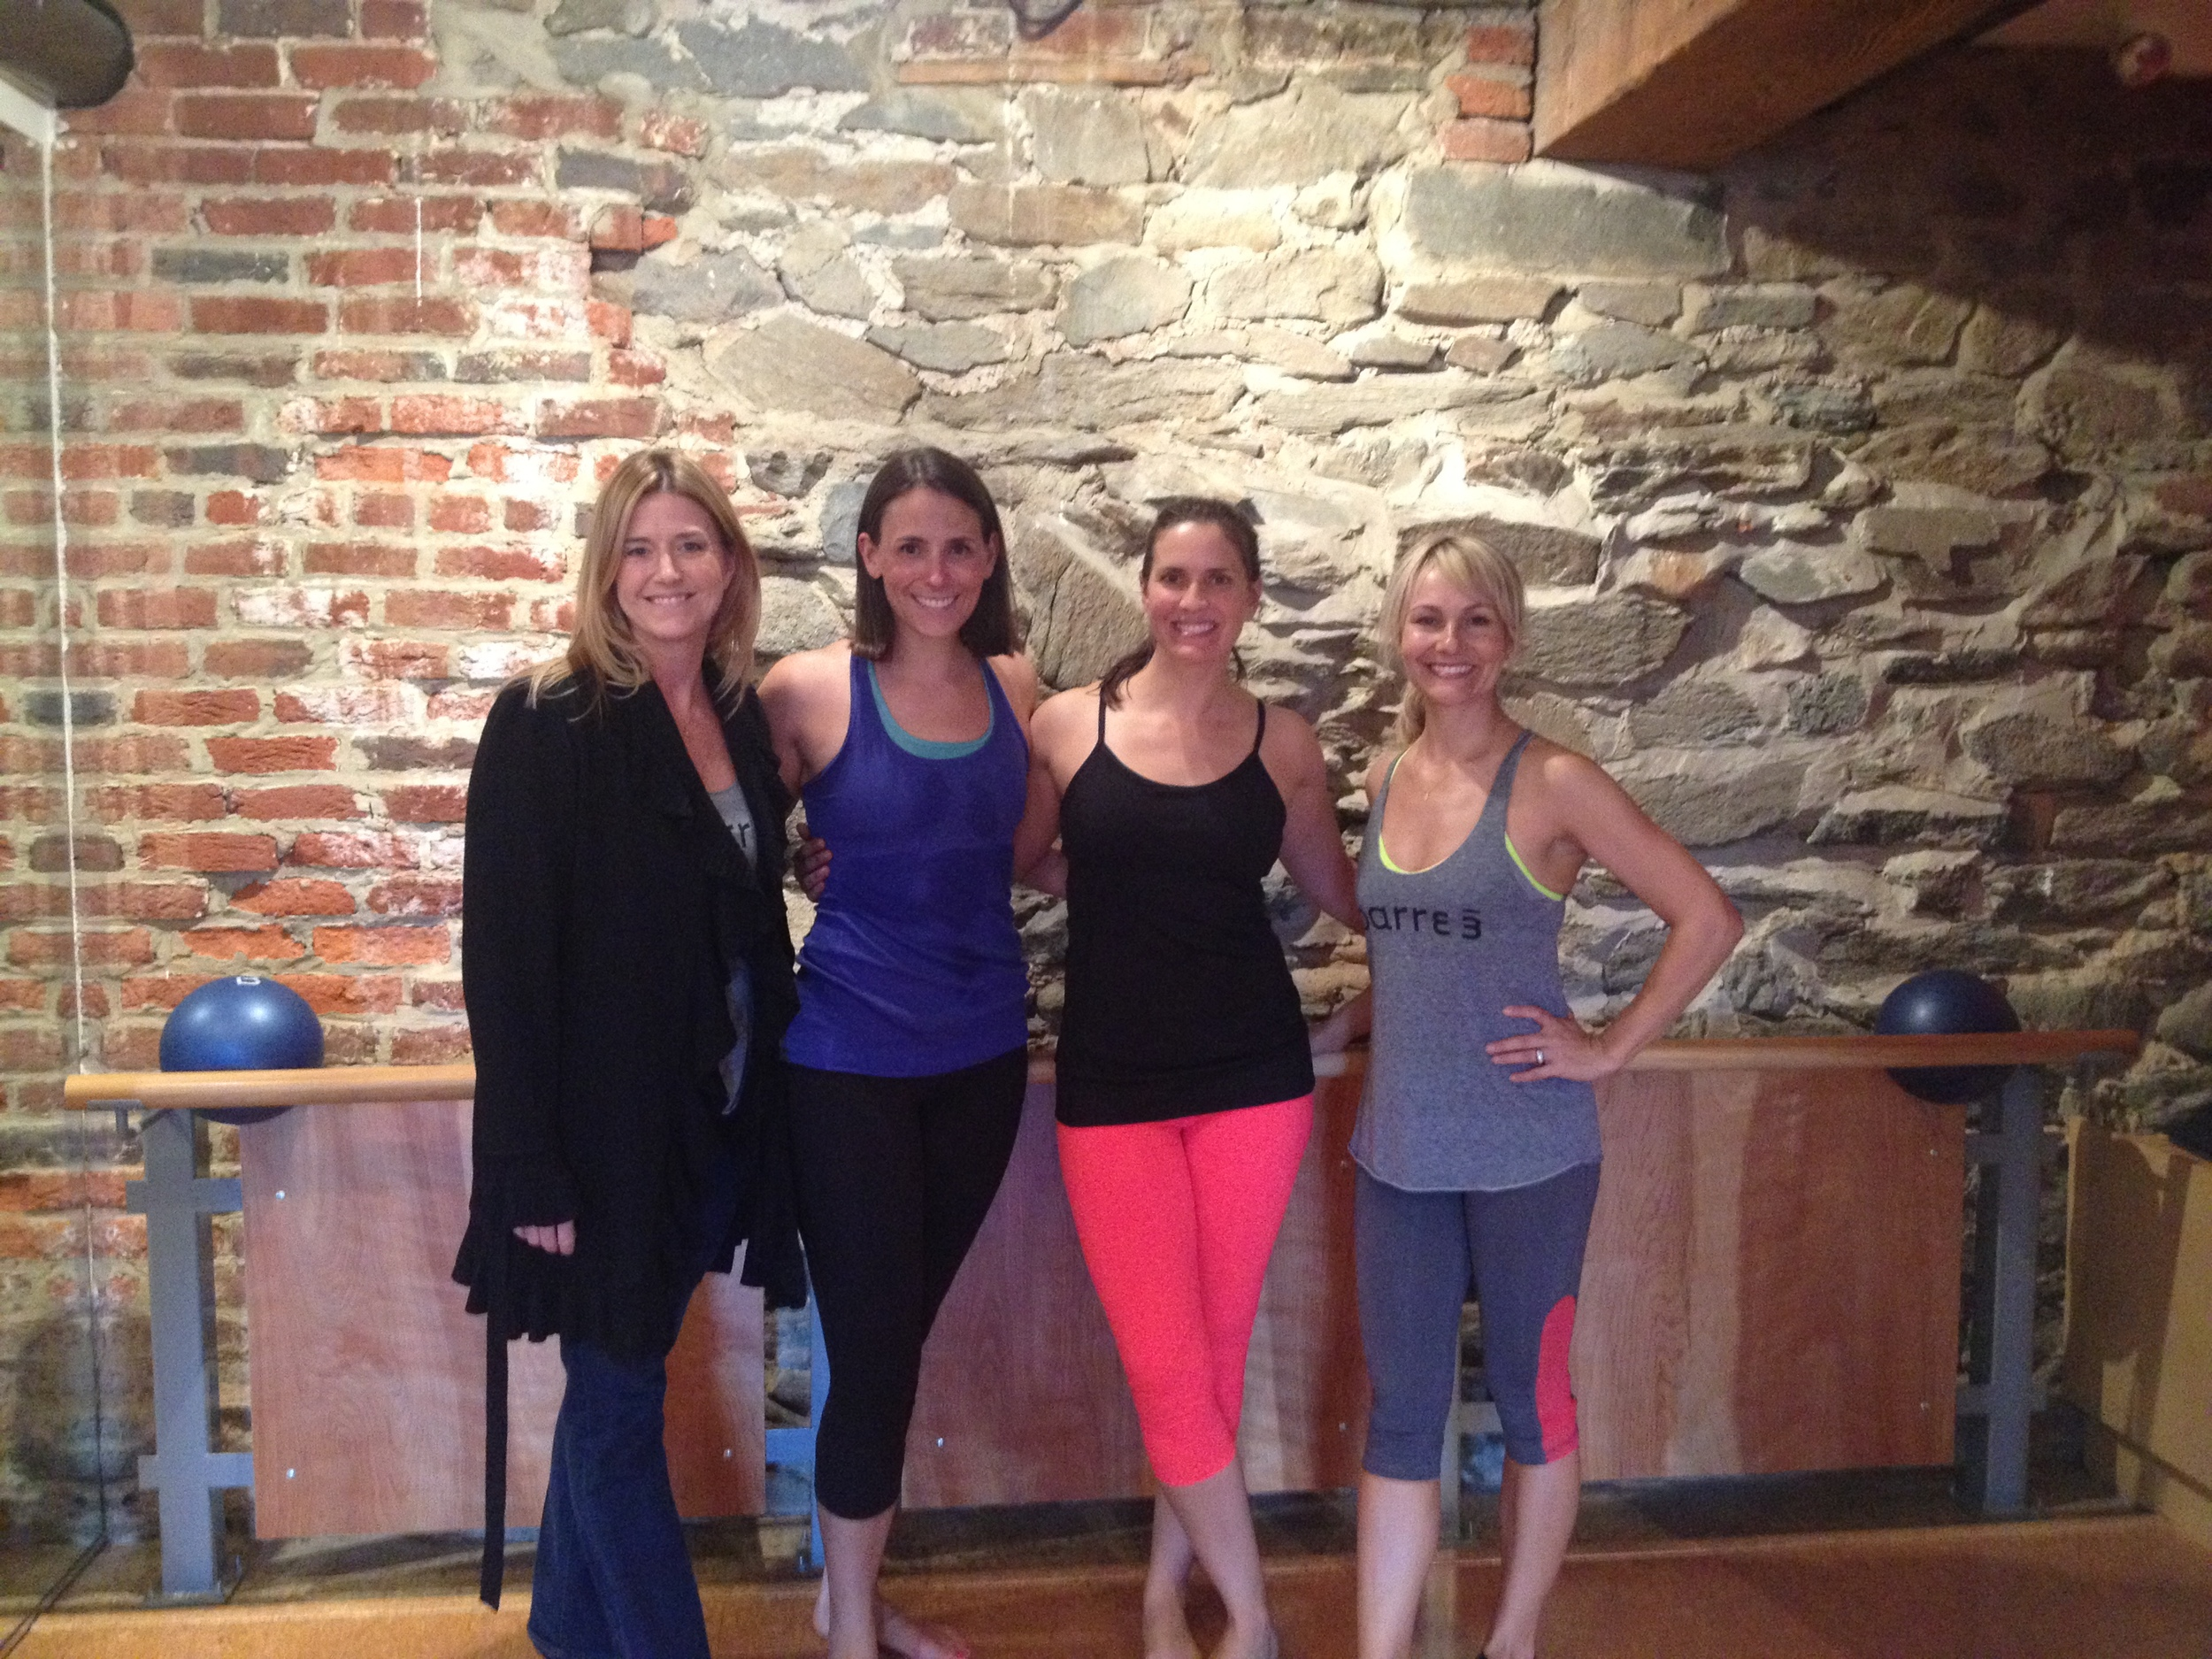 Jill (the owner of Barre 3 in Georgetown), Katie, Me, Sadie (founder and creator of Barre 3) after class